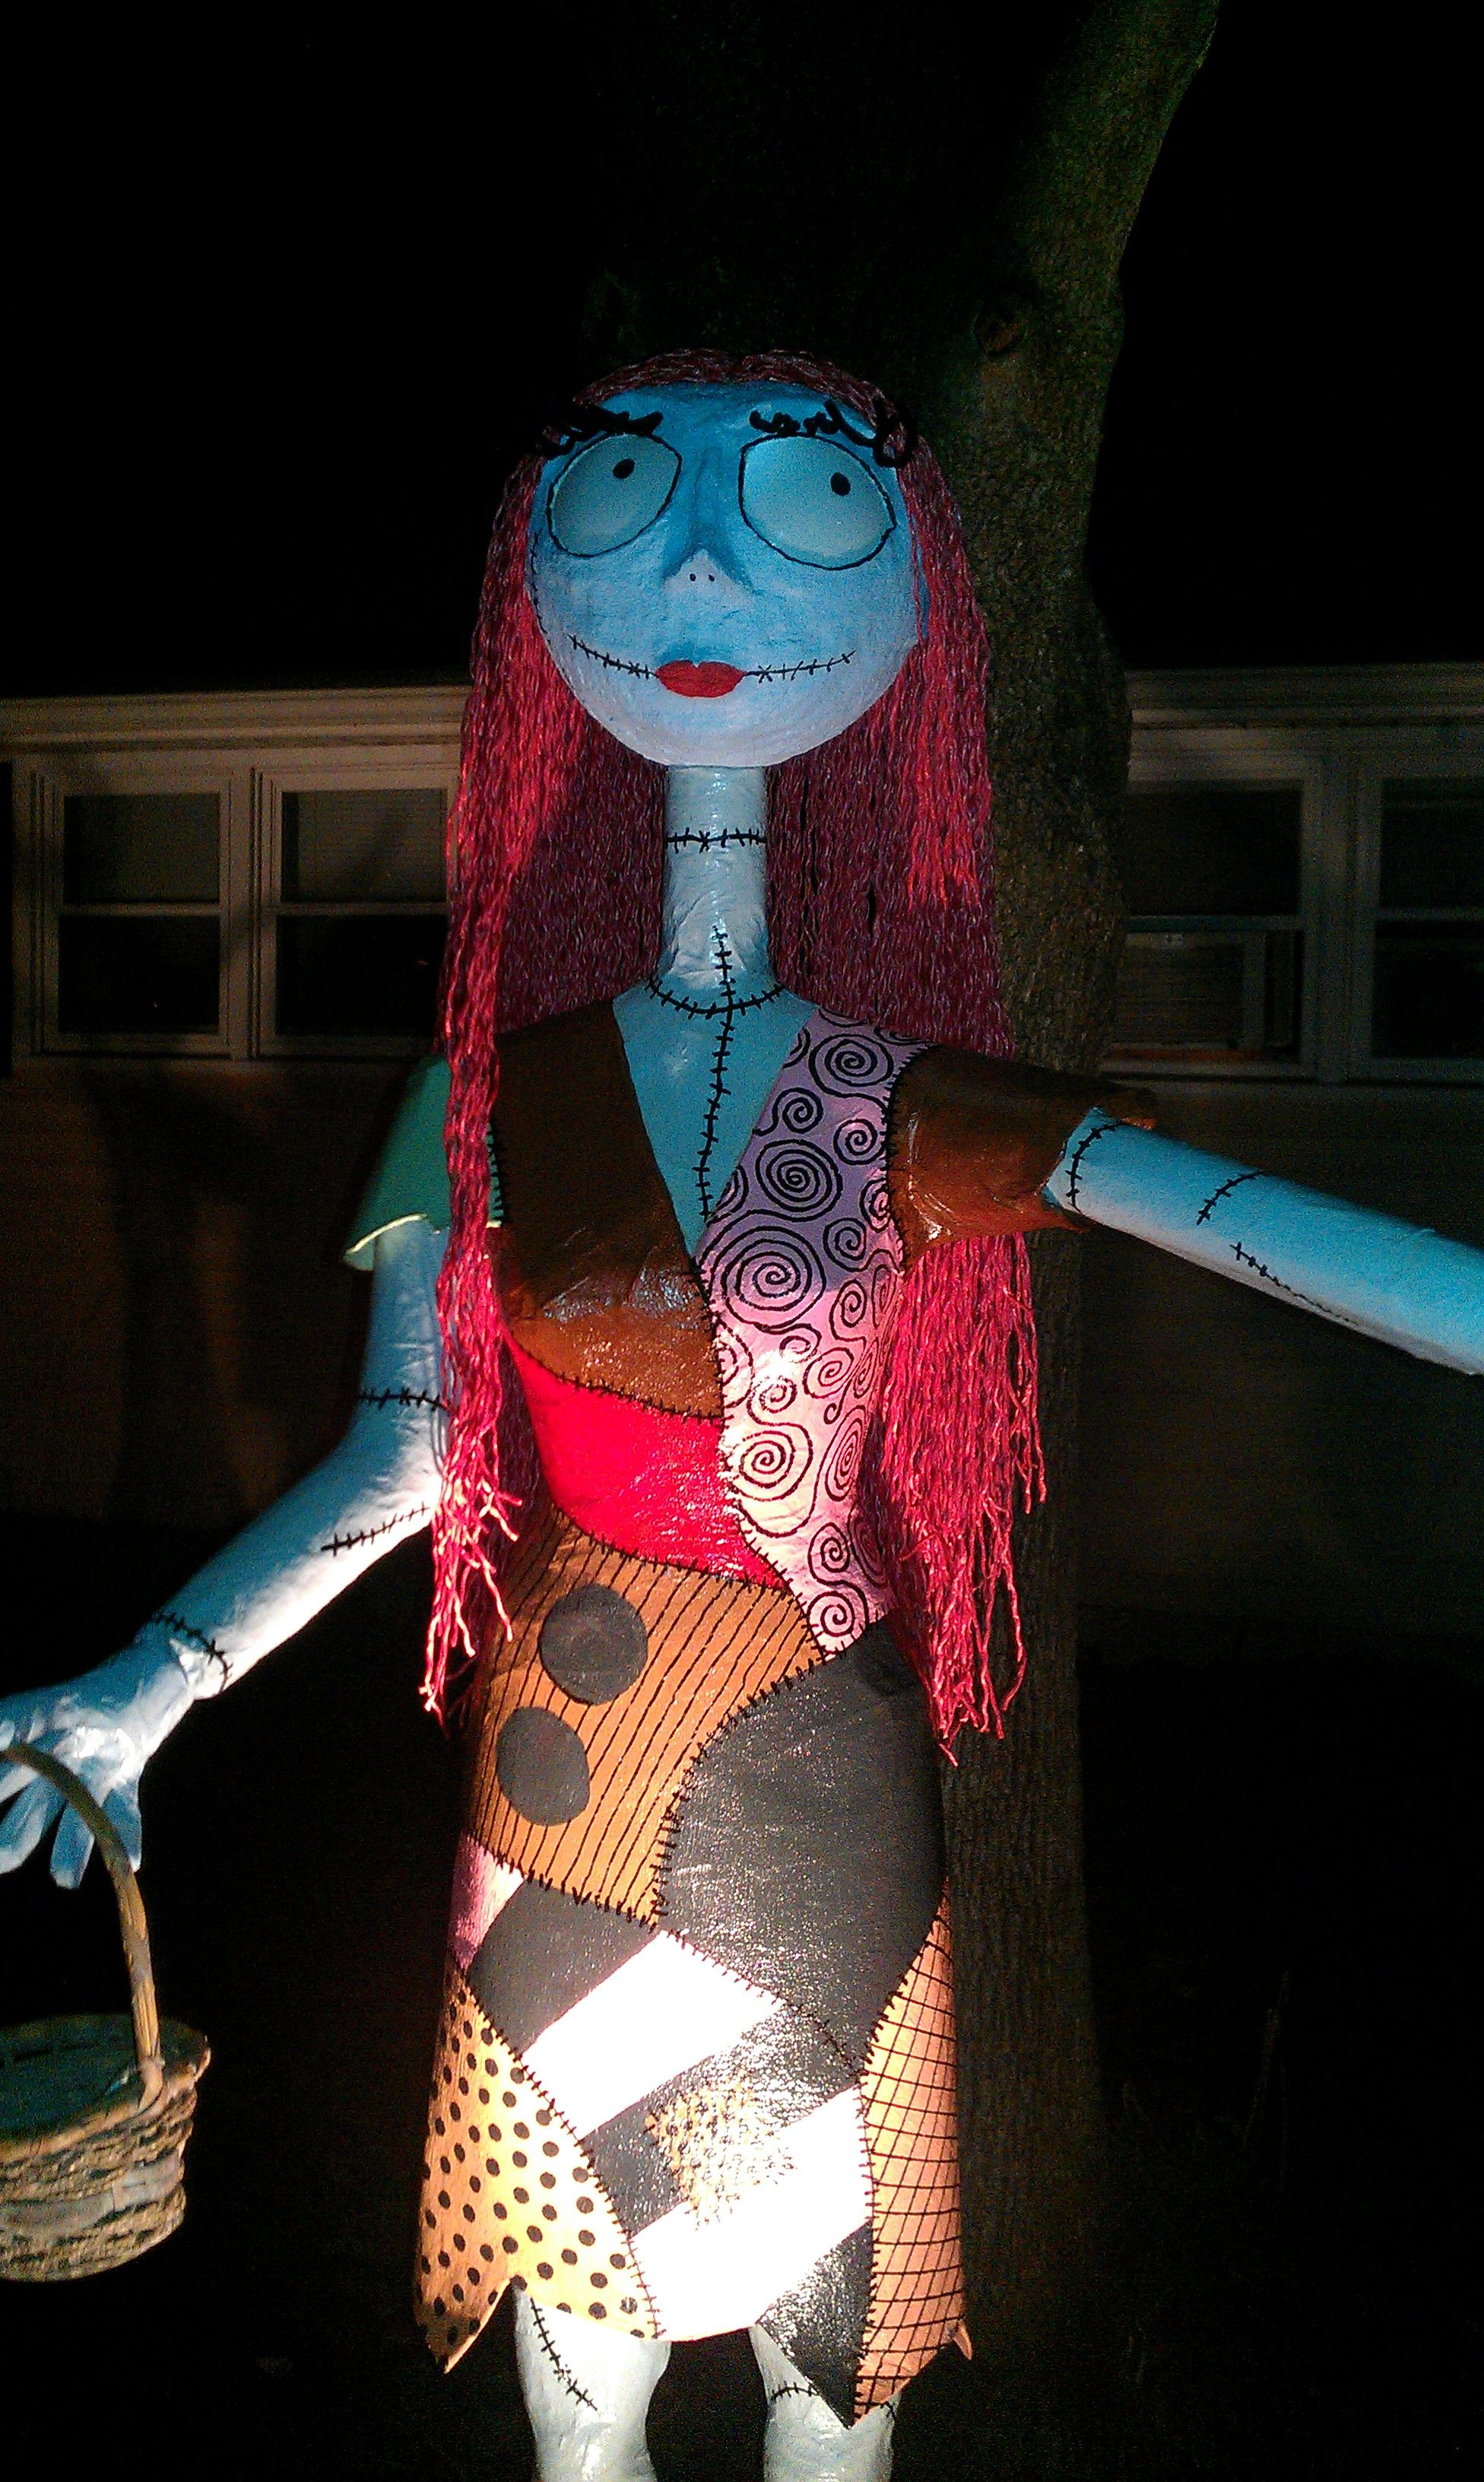 Diy jack skellington s body nightmare before christmas youtube - Paper Mache Nightmare Before Christmas Characters Sally Stands About 6 Feet Tall